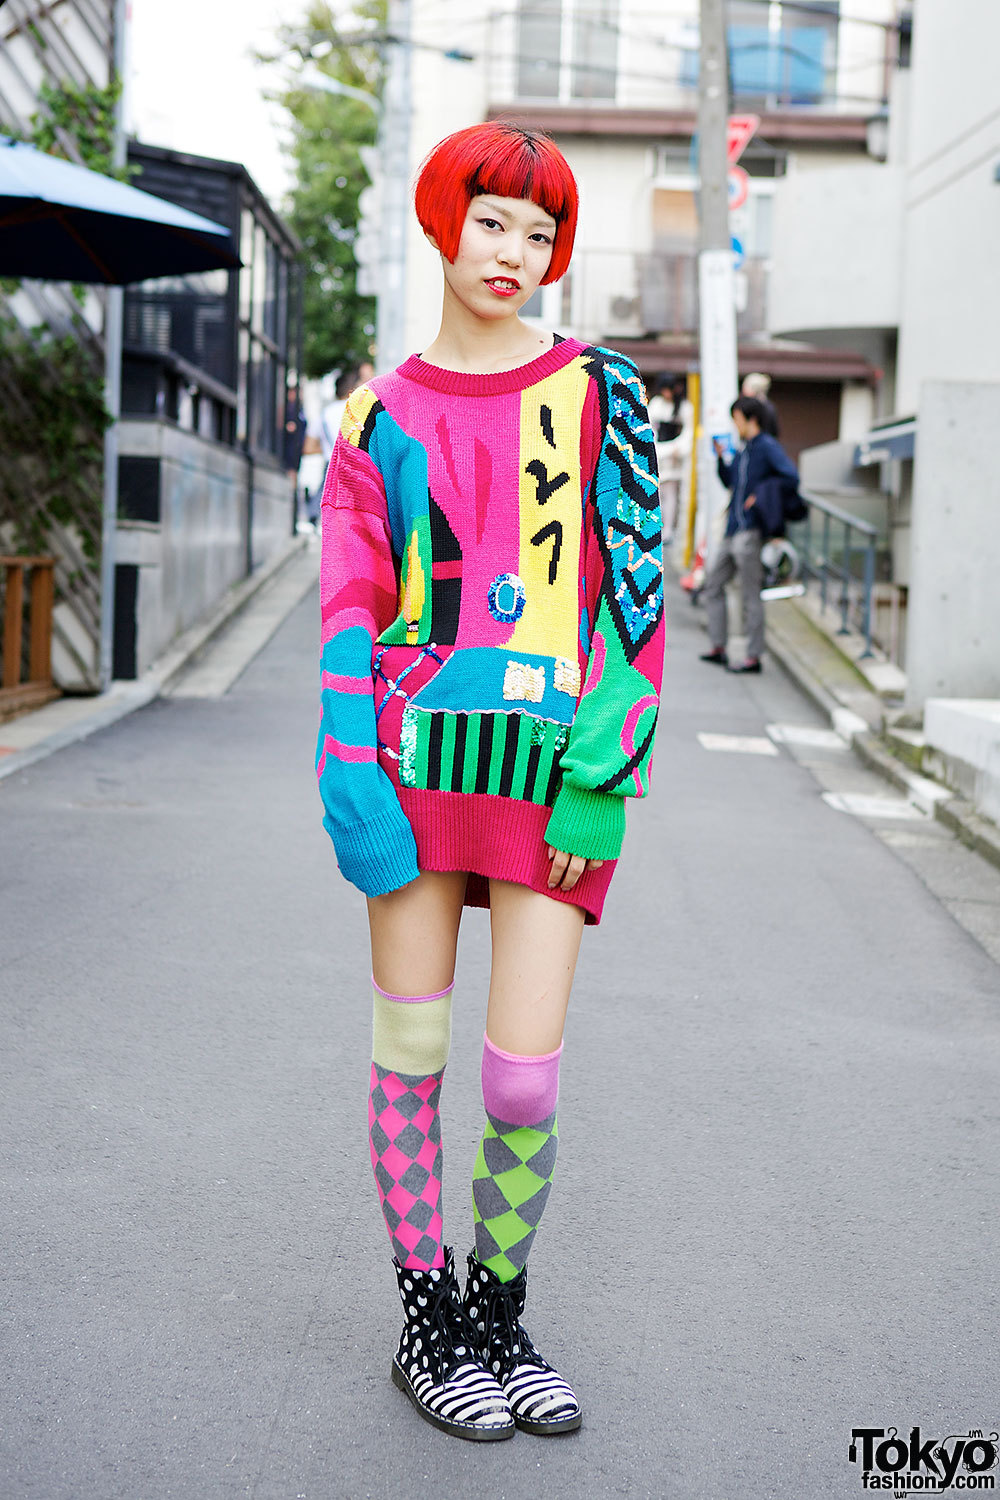 The Circus Harajuku staffer w/ red hair & lips, oversize resale sweater, colorful socks & 24 Footwear boots.